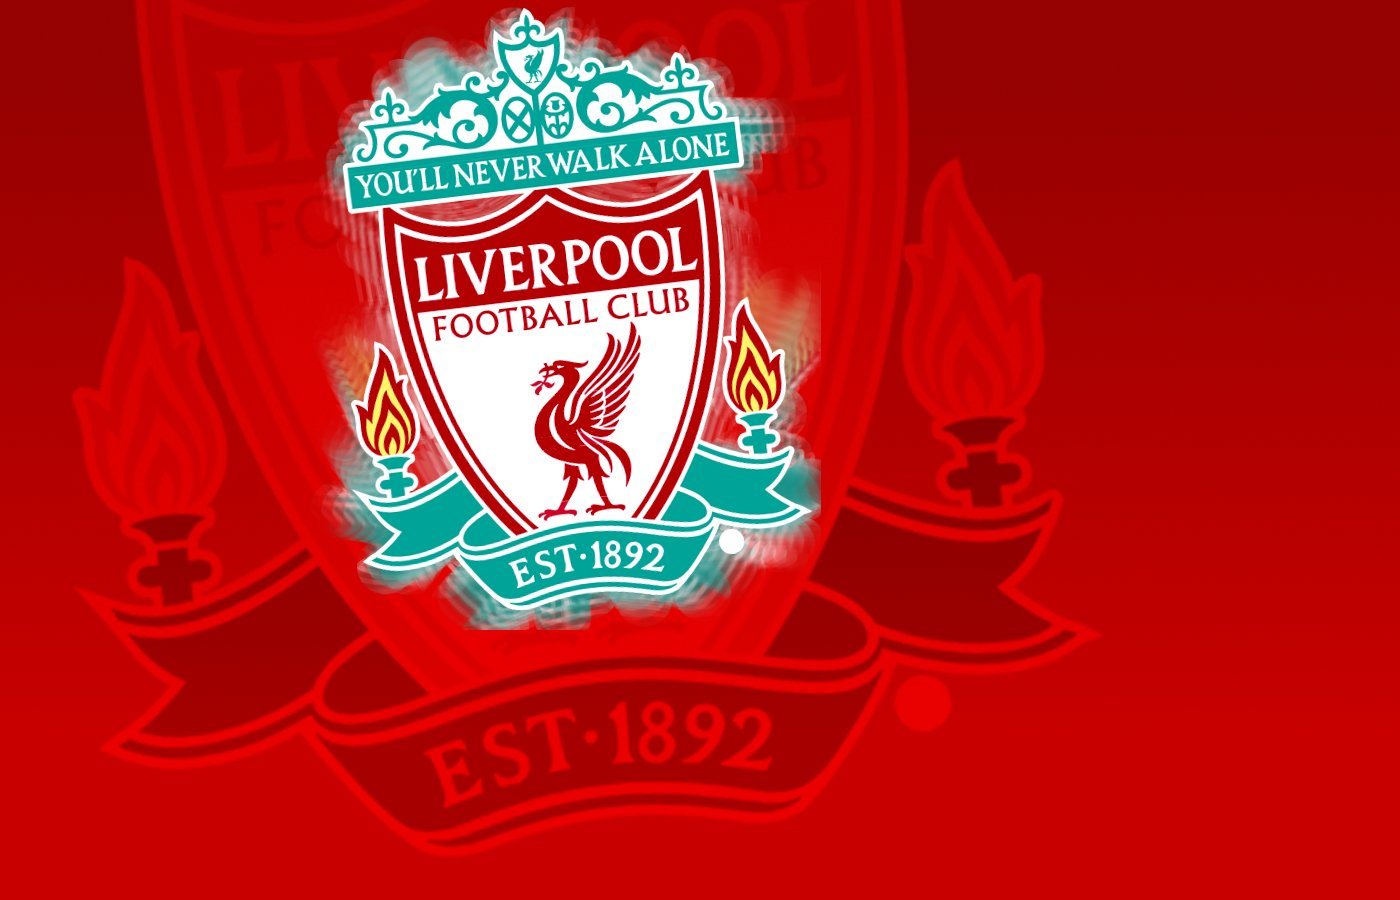 ... /By5Bh5Rr07o/s1600/liverpool+football+club+wallpaper+2012-2013+04.jpg